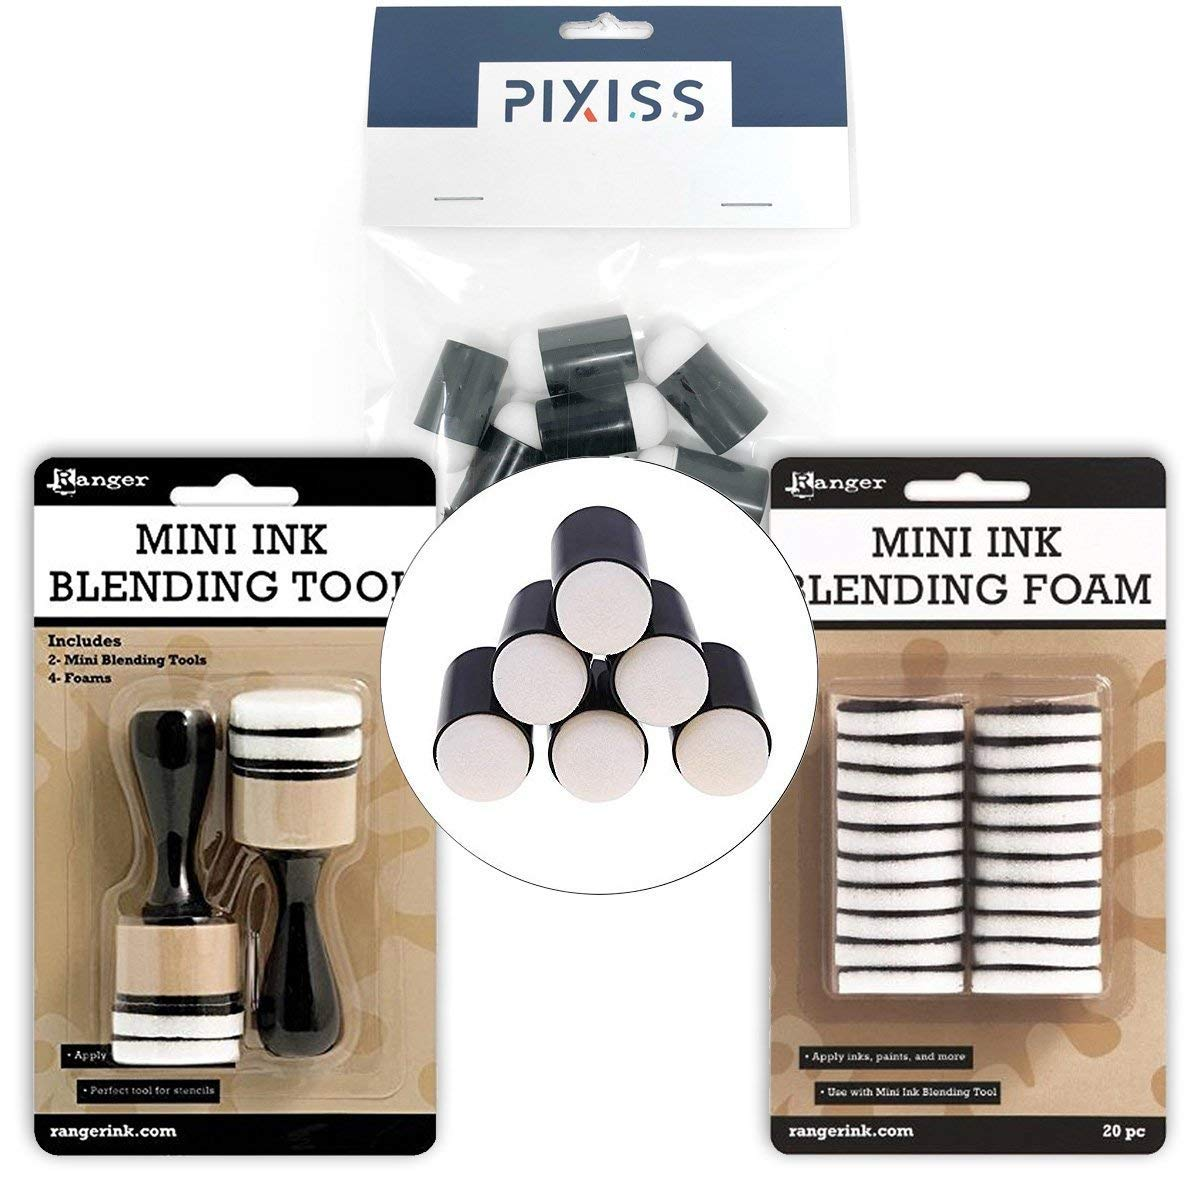 Ink Blending Bundle, 2 Ranger Mini Ink Blending Tools, 20pc Blending Foam Replacements and 10 Pixiss Finger Sponge Daubers